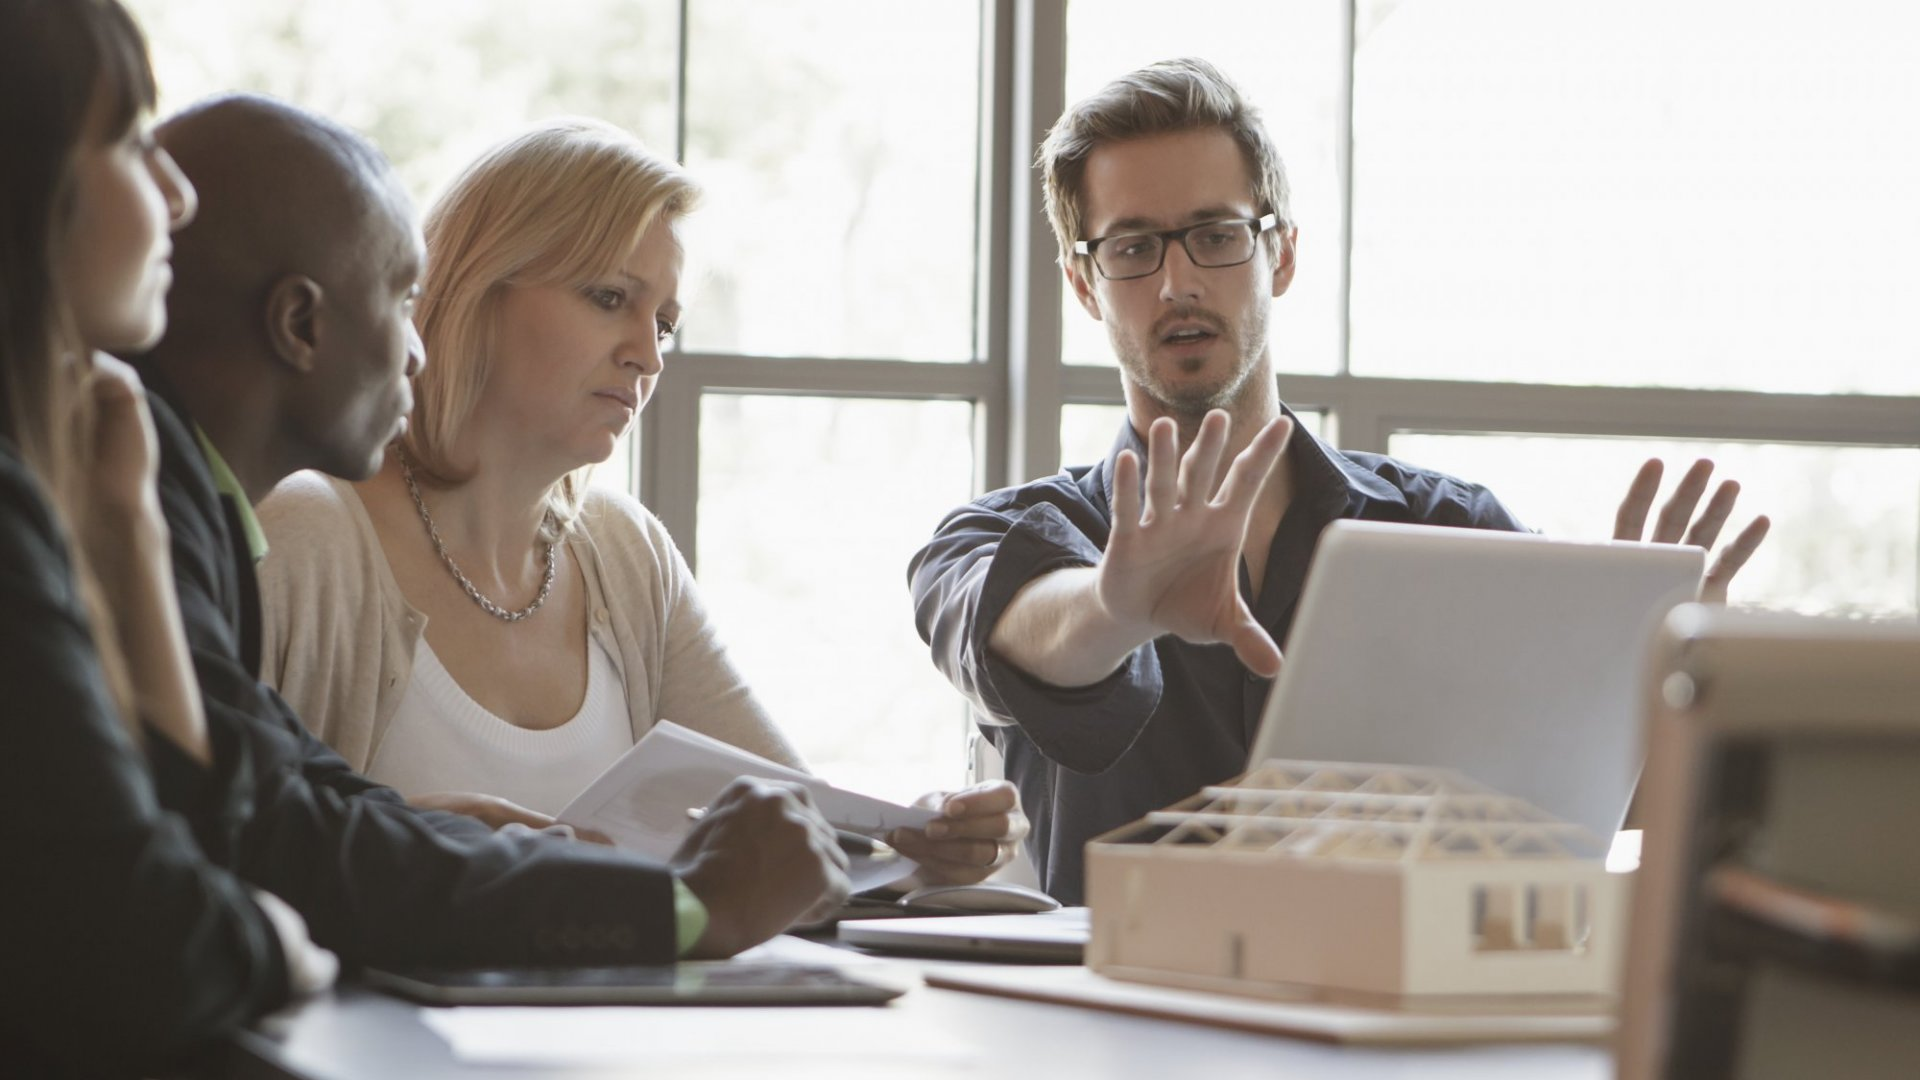 Want to Be More Persuasive? Try Doing These 6 Things